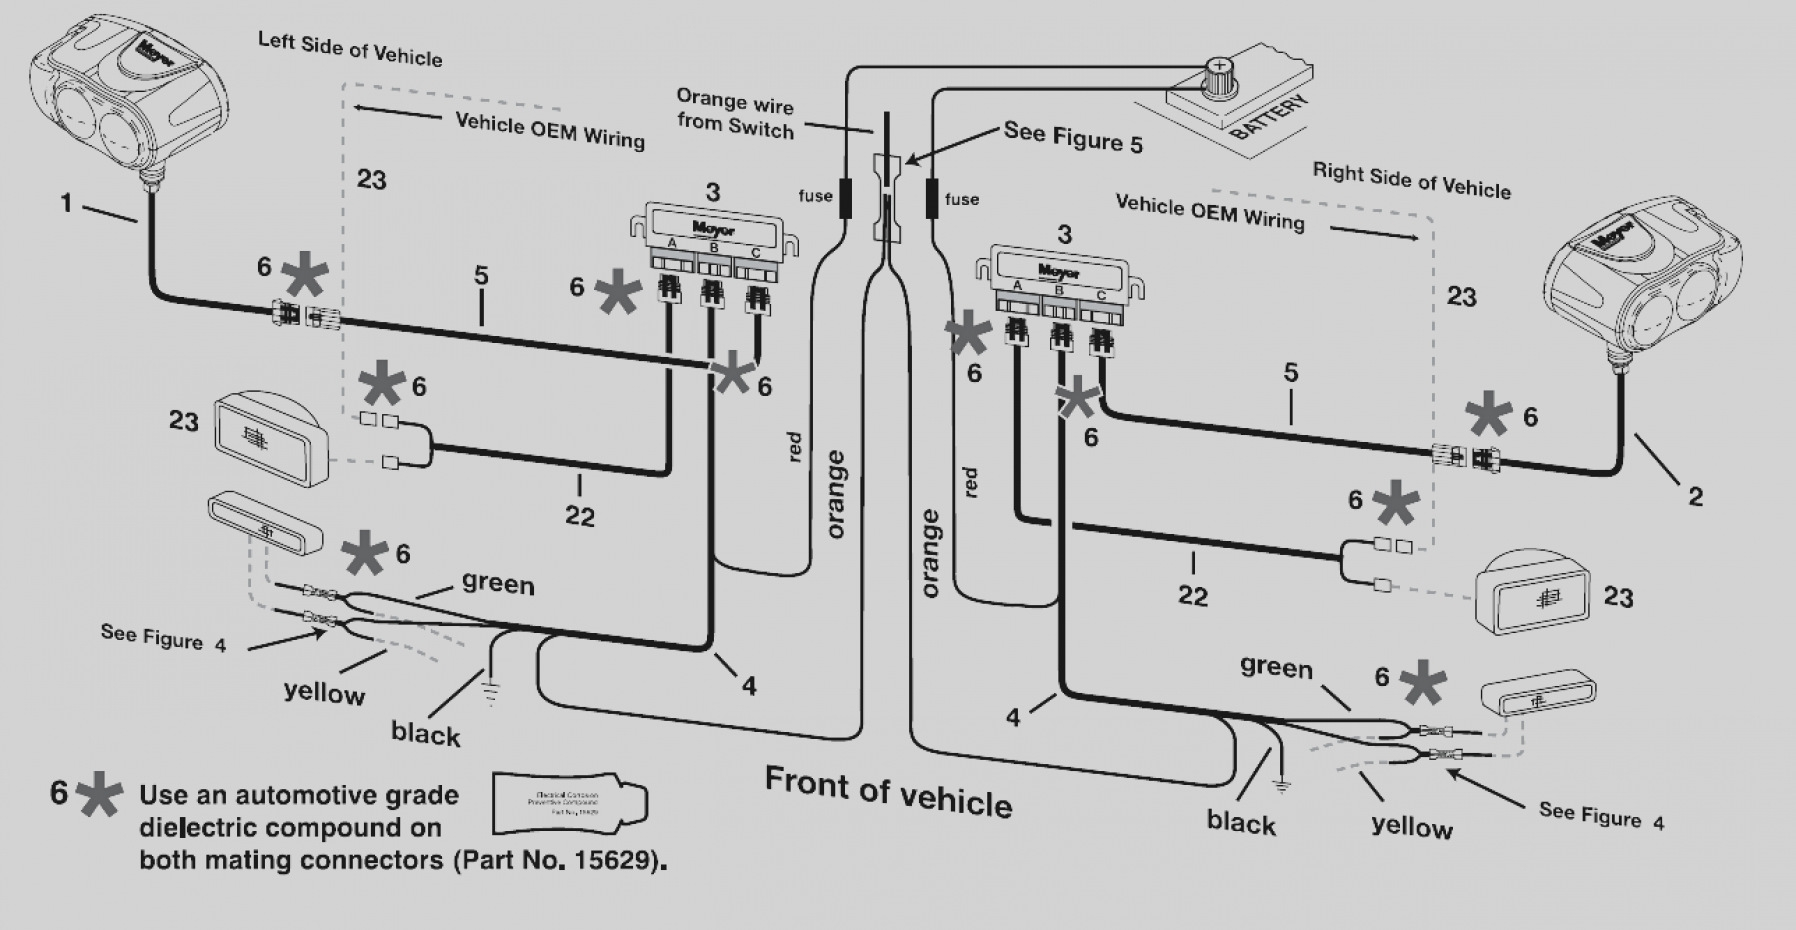 hight resolution of wrg 3714 sam plow controller wiring diagram plow solenoid wiring in addition western unimount snow plow wiring